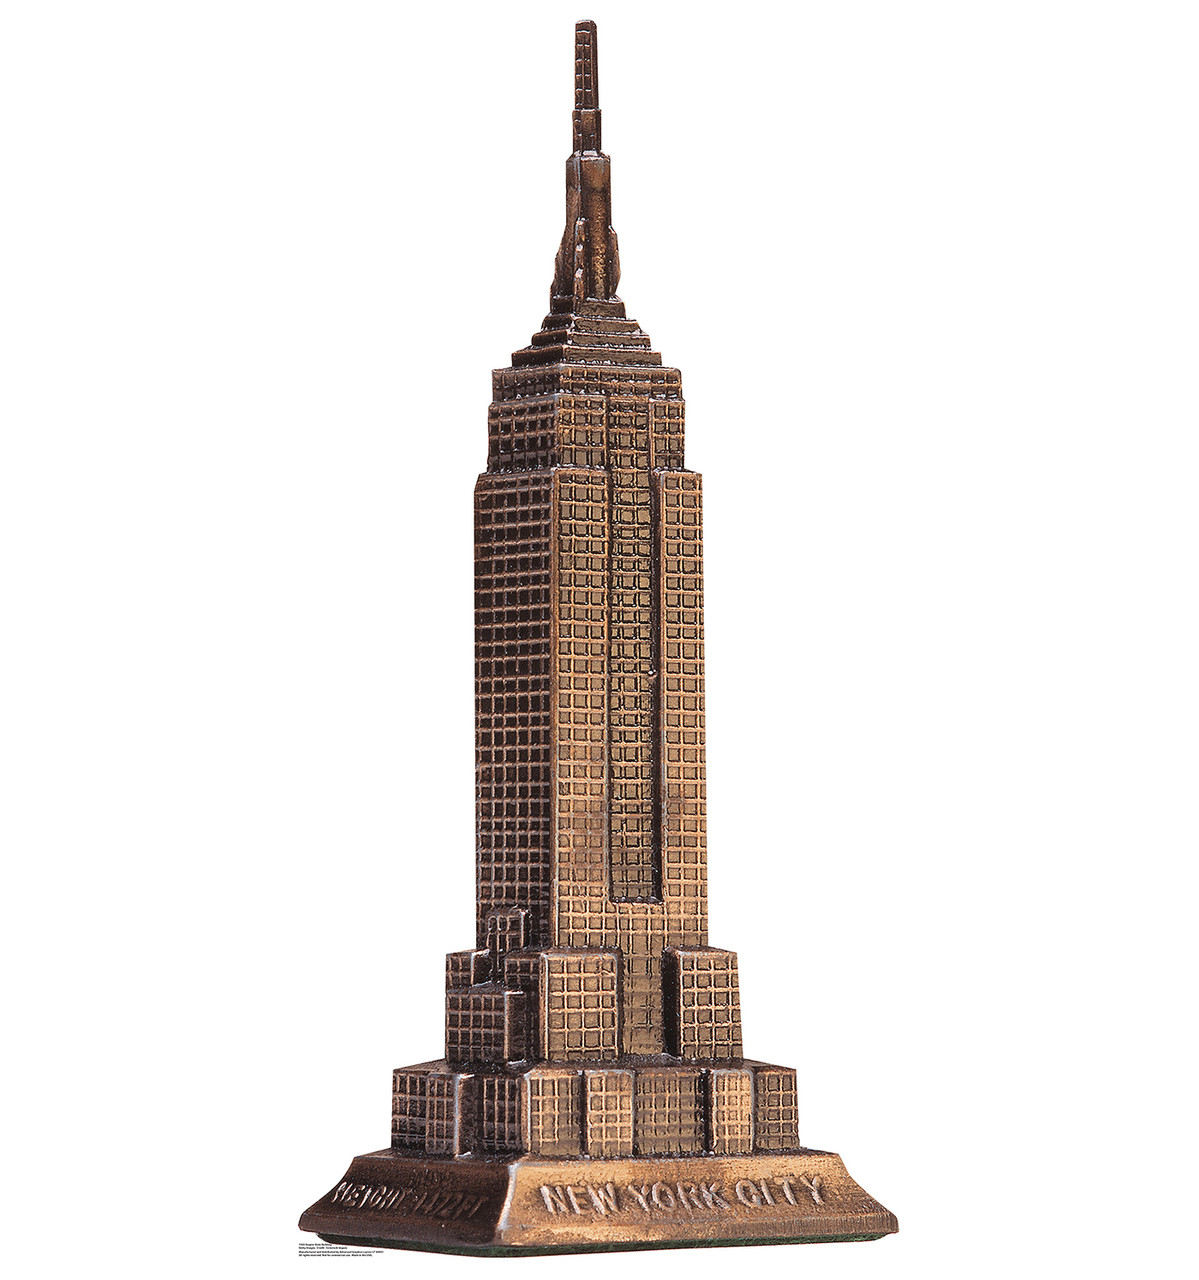 Life-size Empire State Building Cardboard Standup | Cardboard Cutout